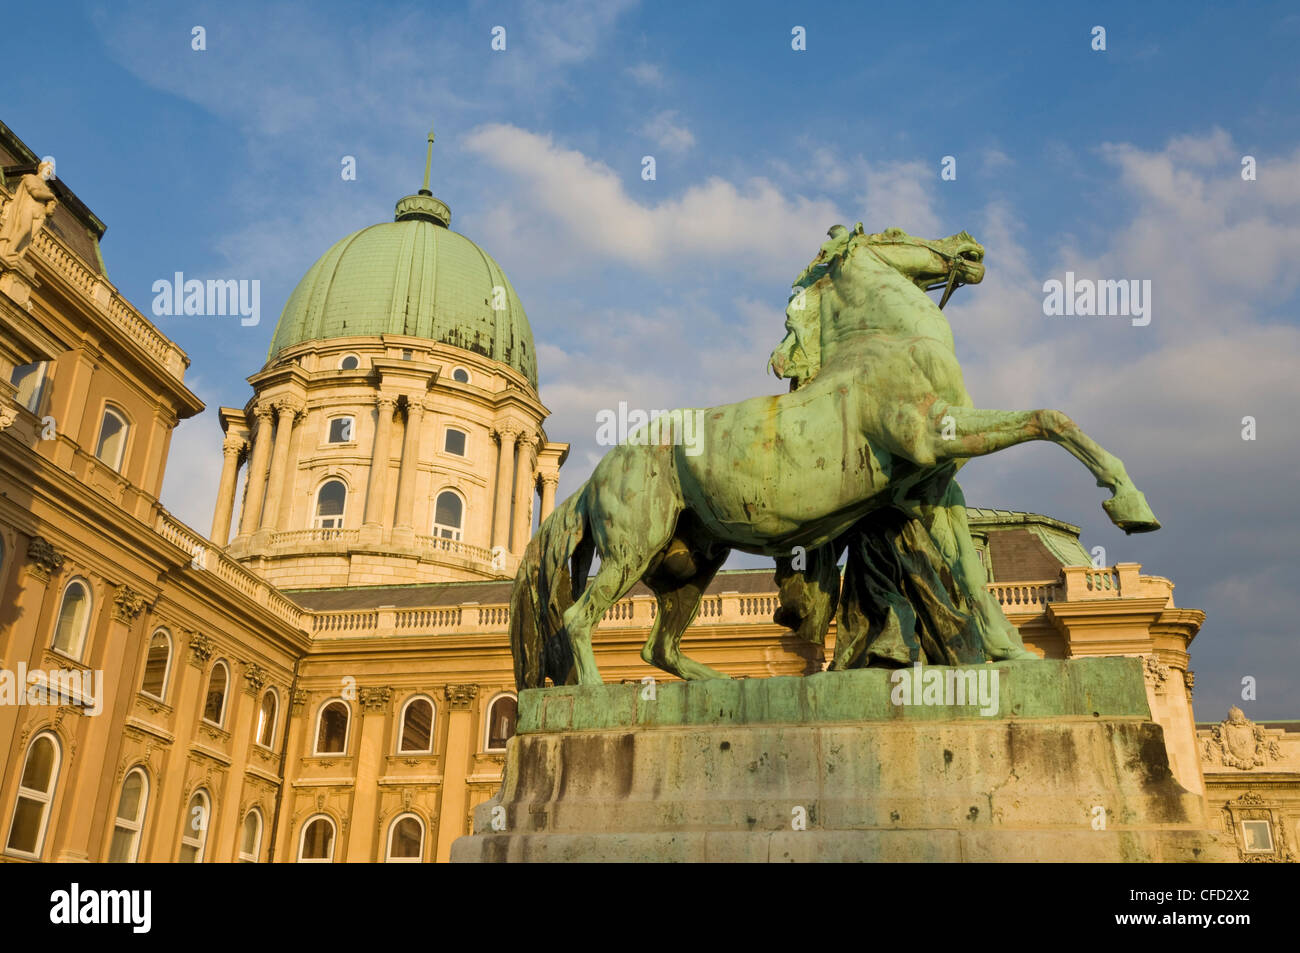 Rear facade of the Hungarian National Gallery, Castle District, Pest side of the Danube, Budapest, Hungary - Stock Image